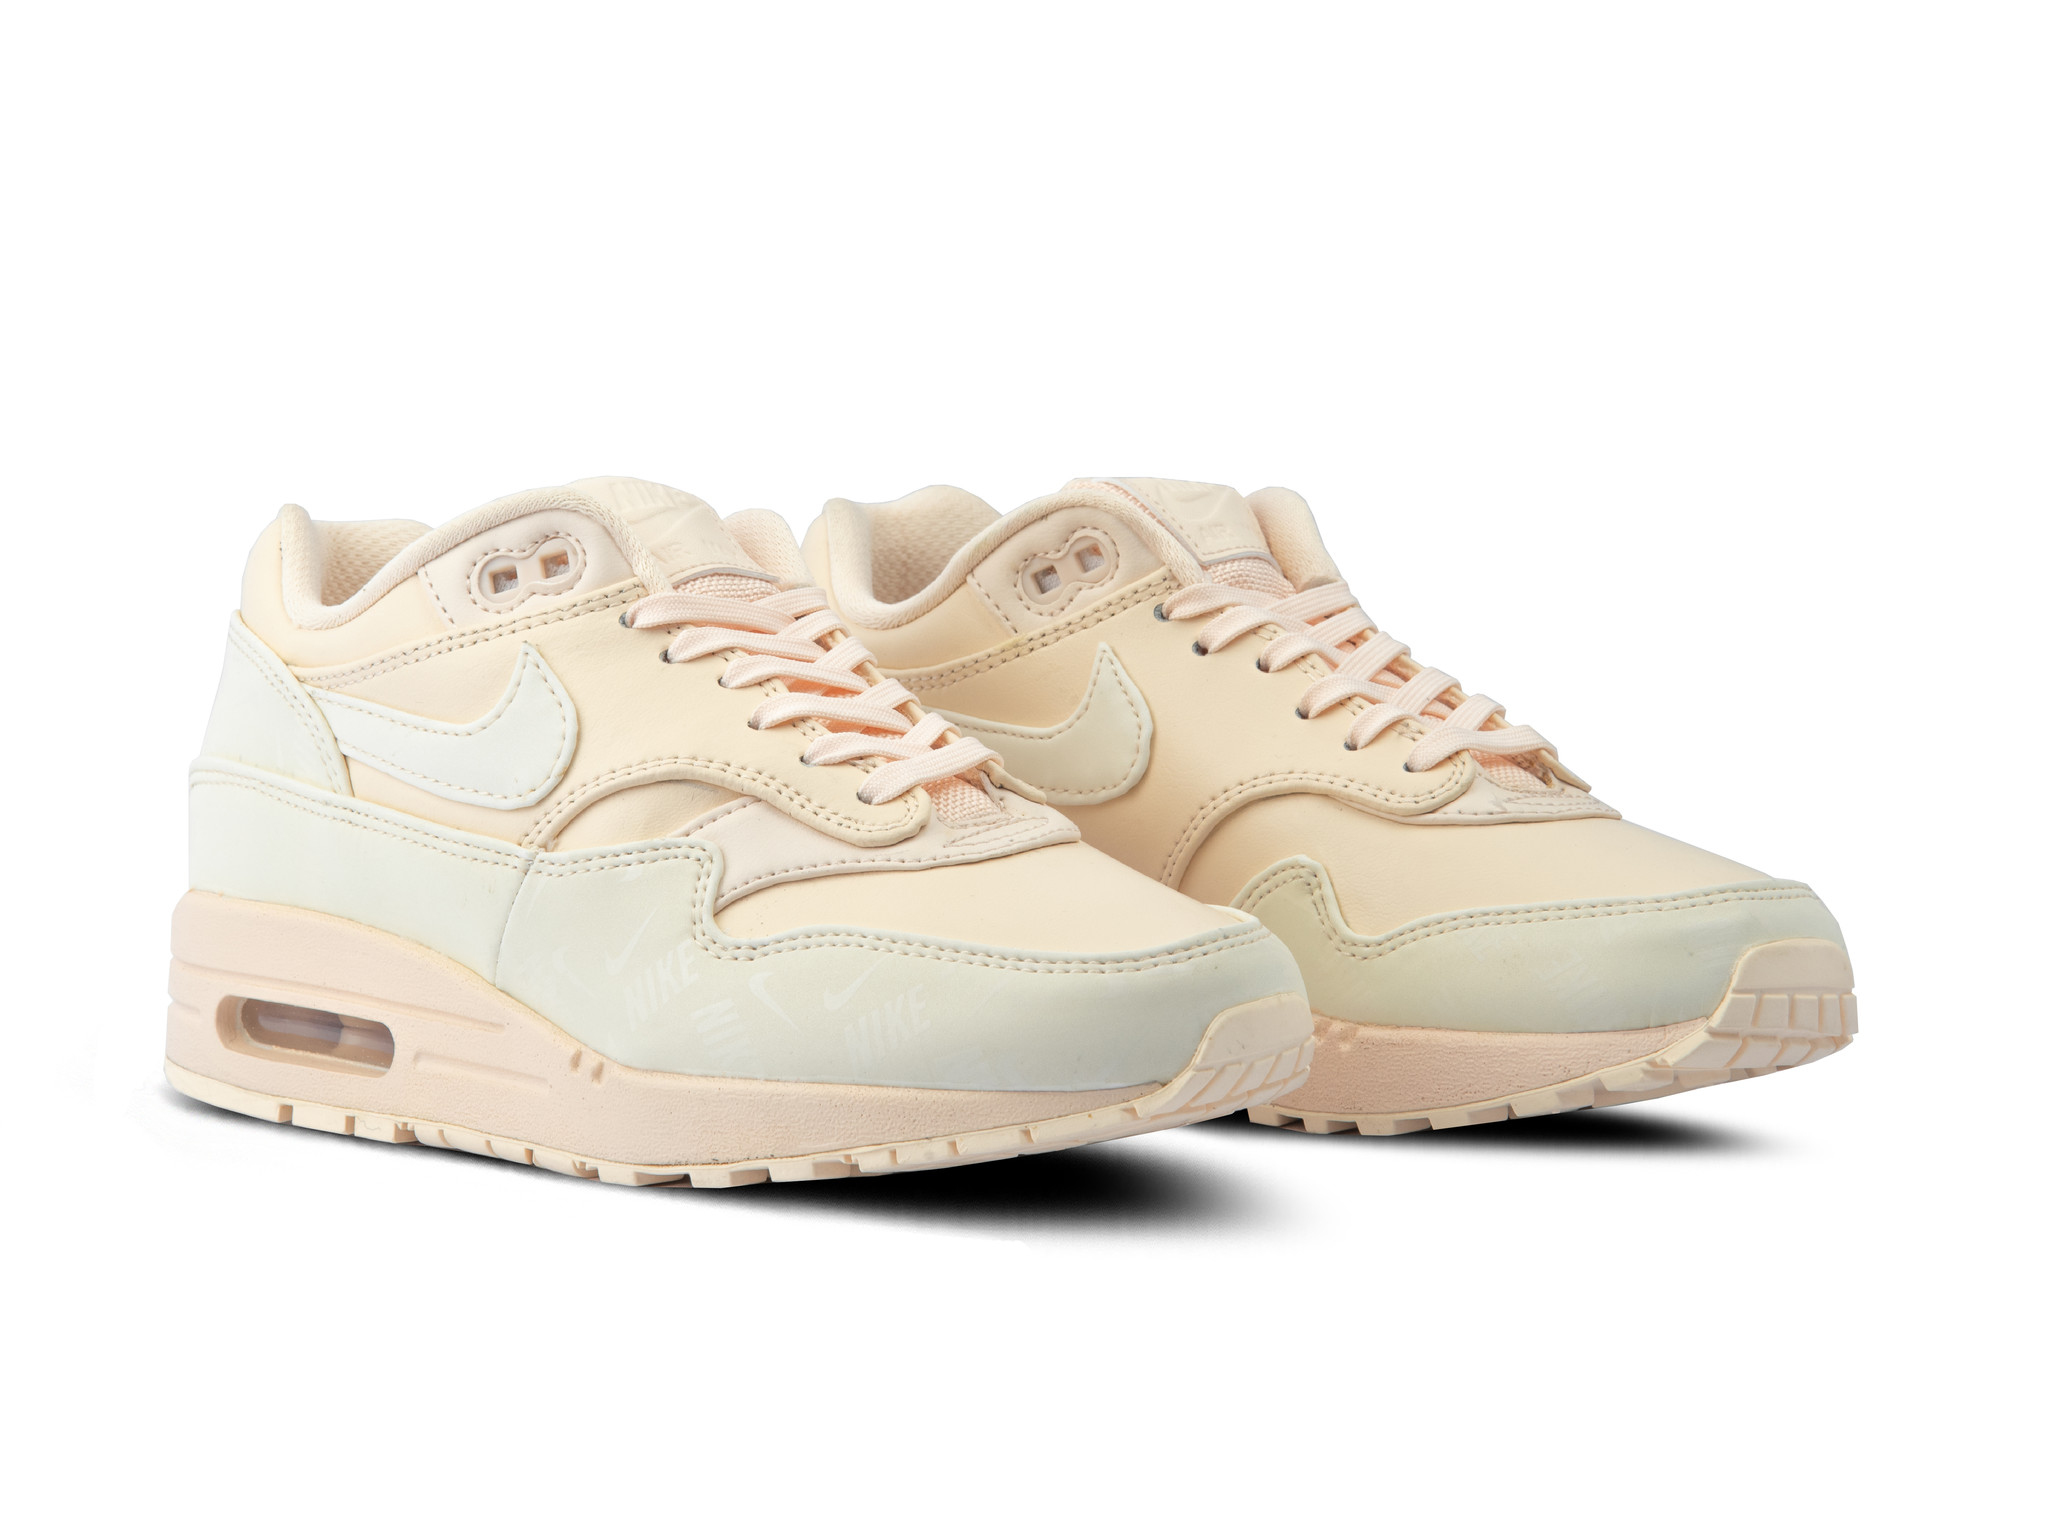 Nike WMNS Air Max 1 LX Guava Ice Guava Ice Guava Ice 917691